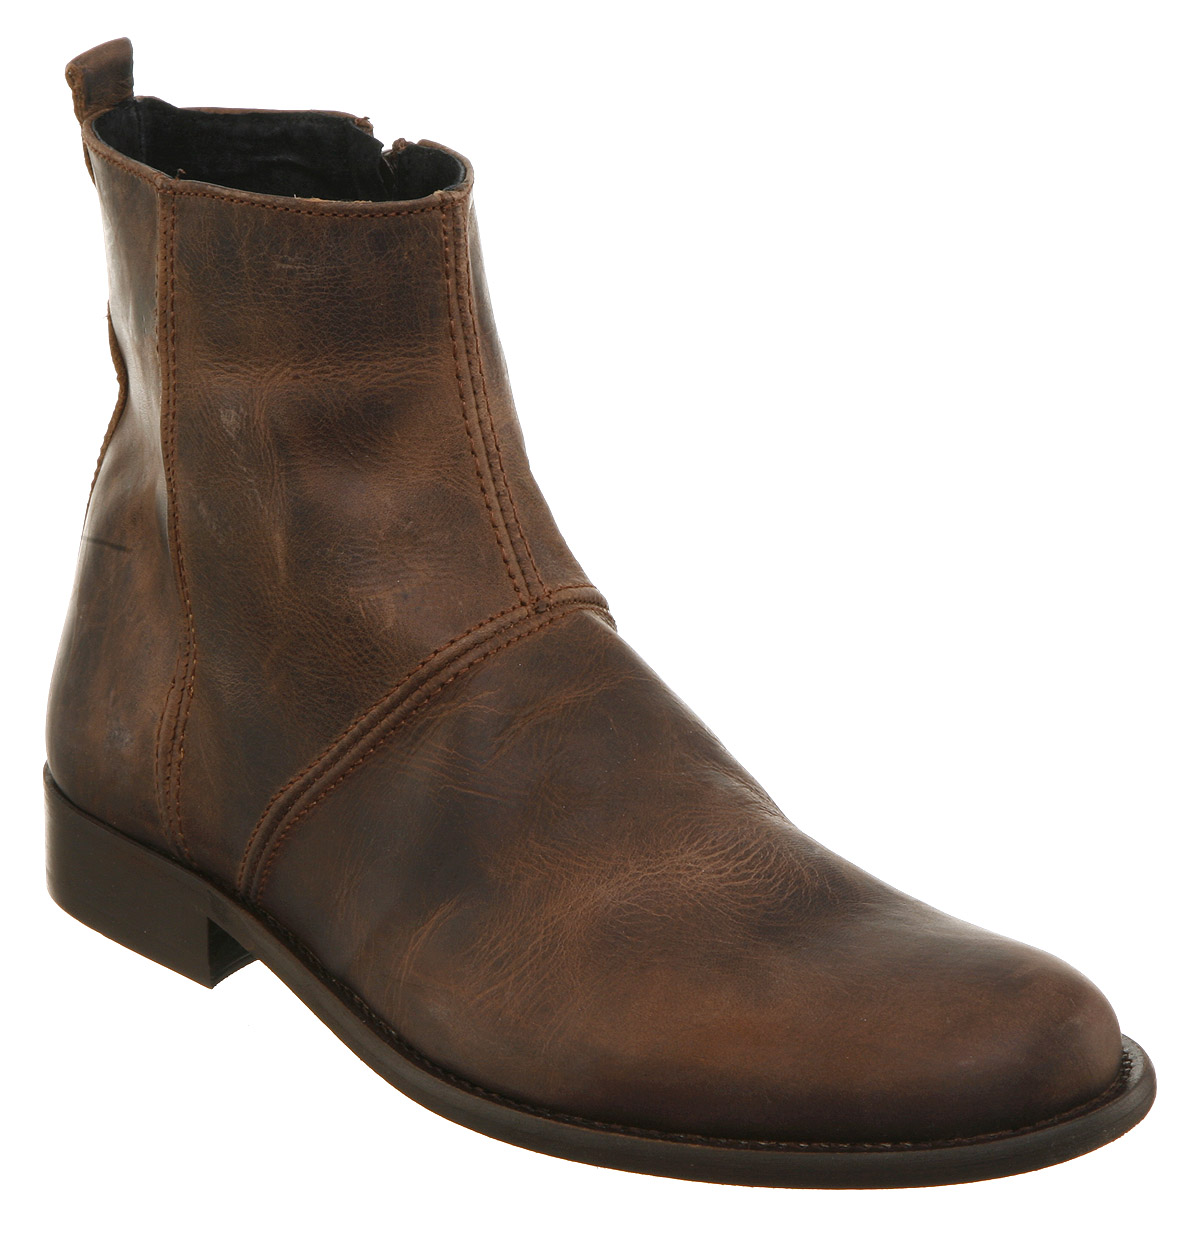 Freeman Leather Shoes